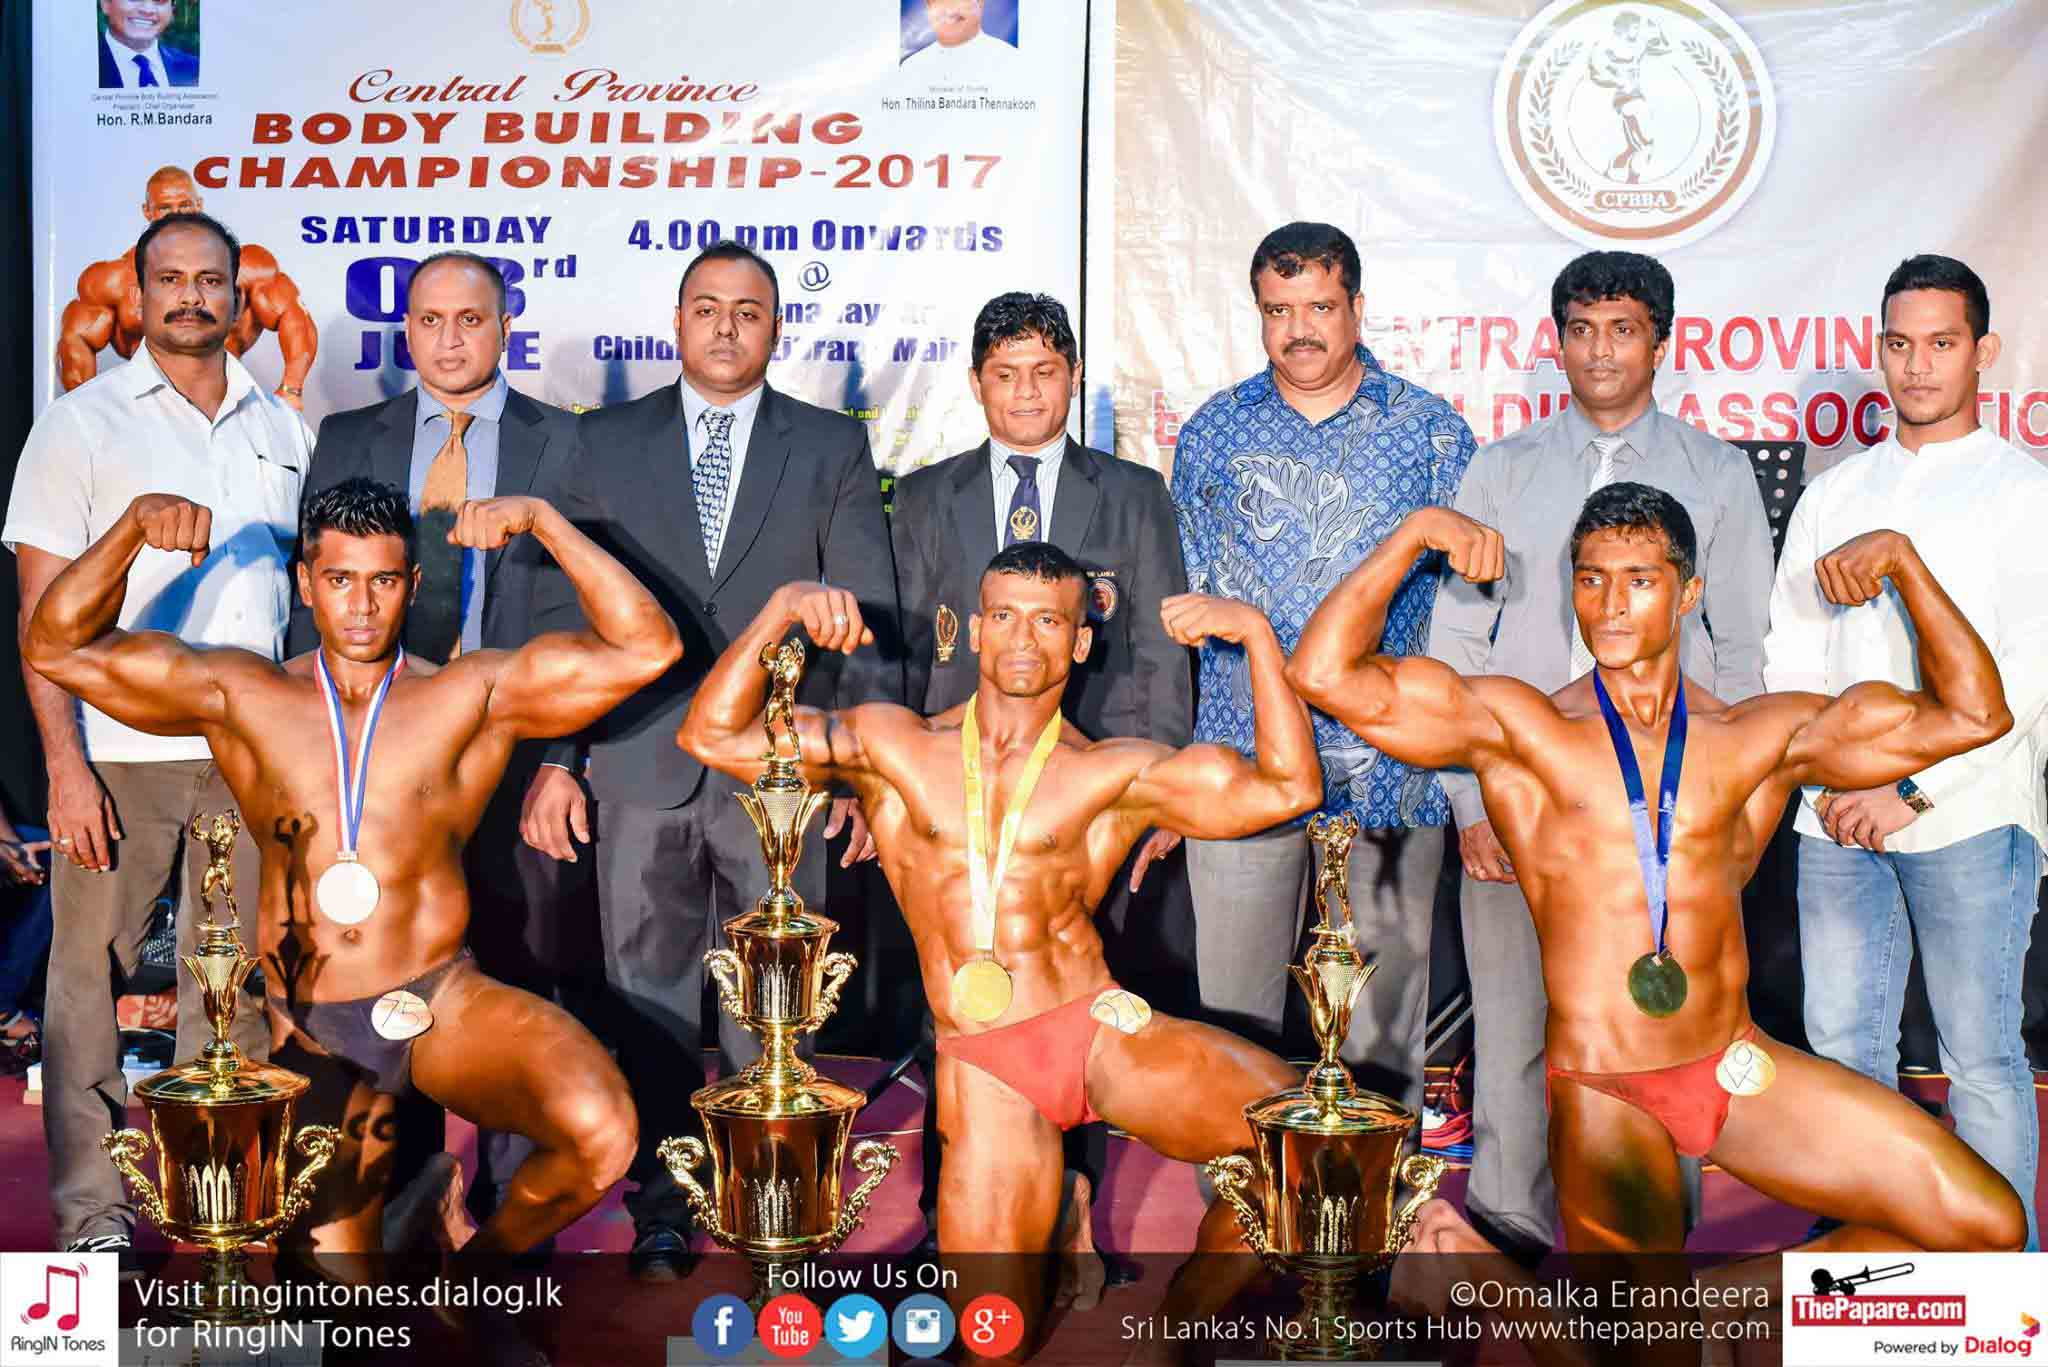 Central Province Body Building Championship 2017